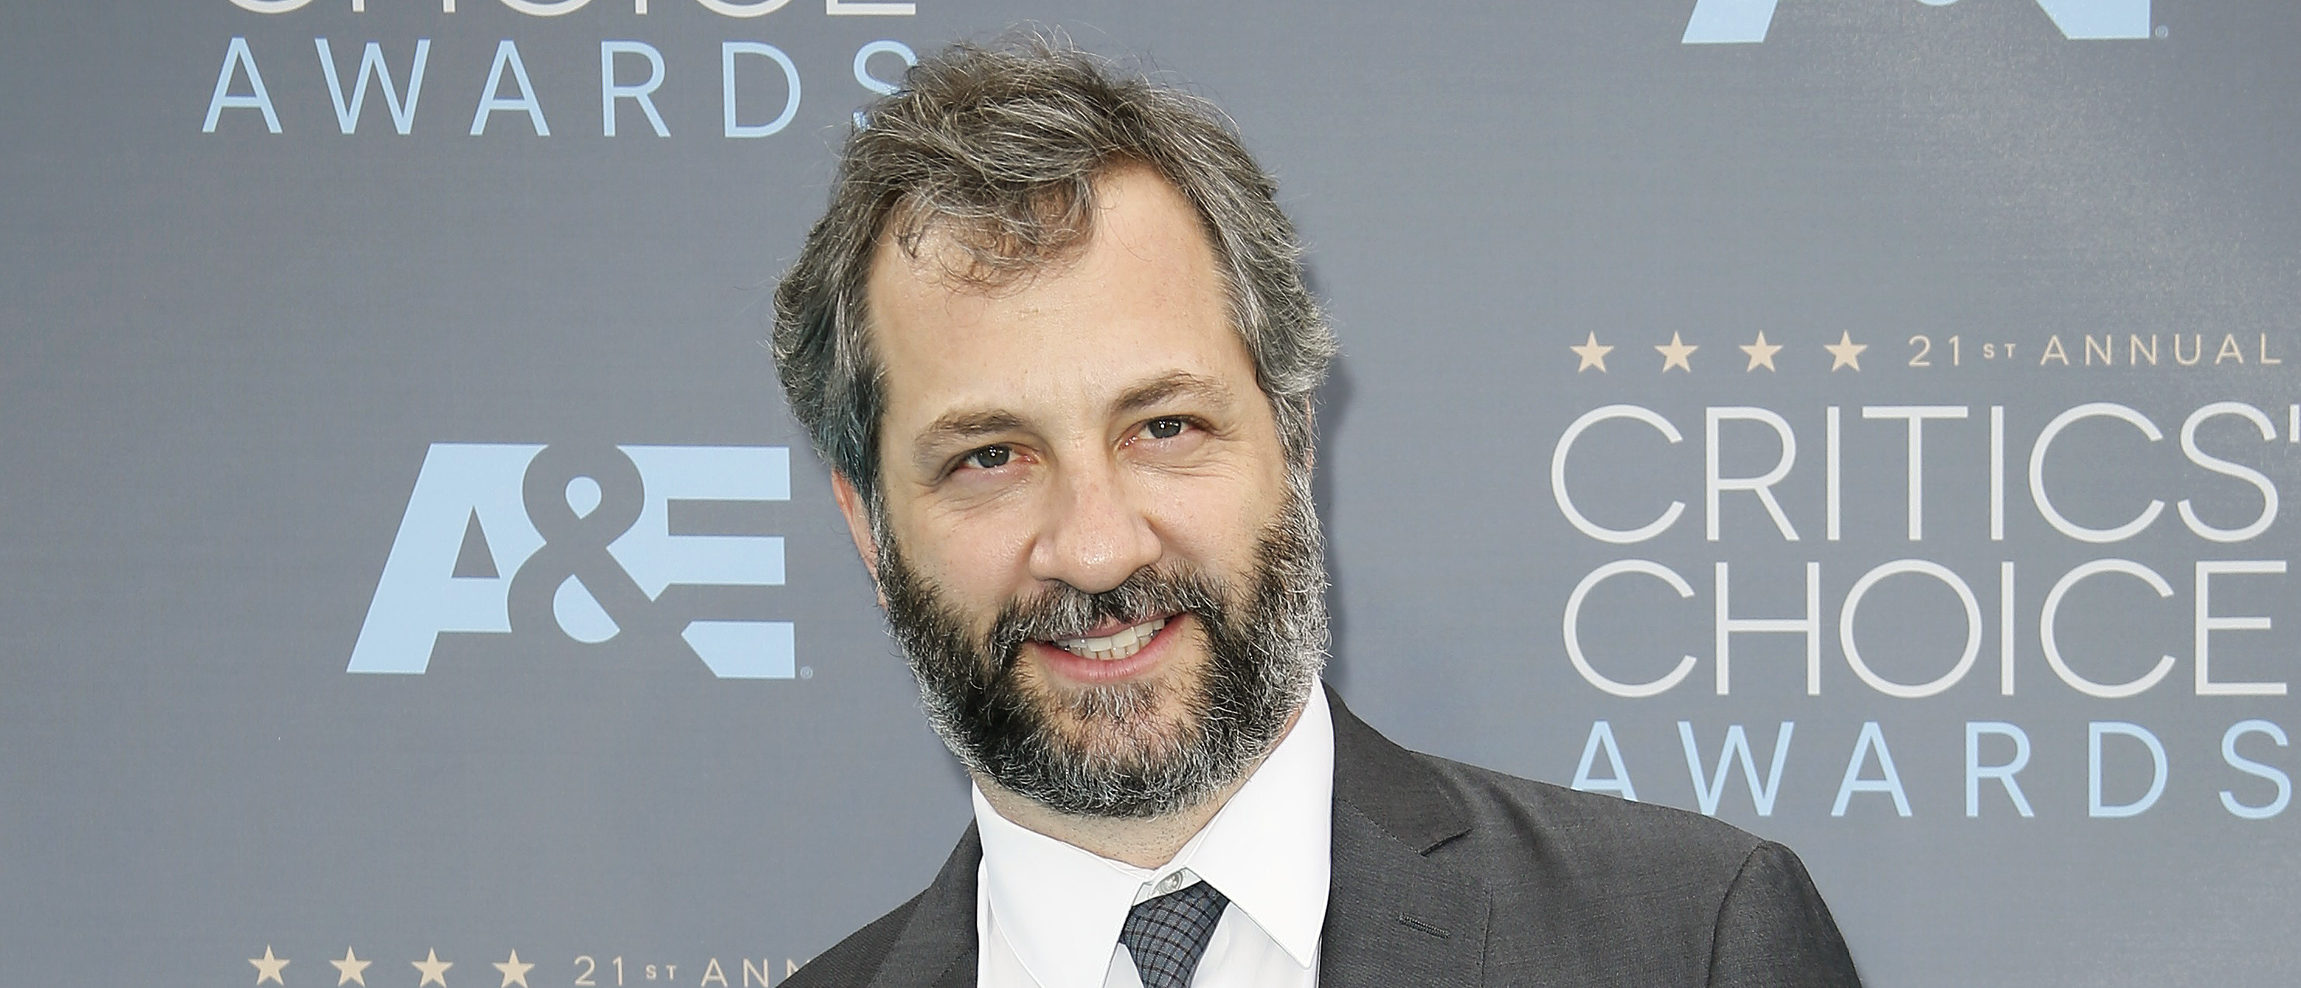 Judd Apatow Goes After Tarantino For Staying Silent About Weinstein